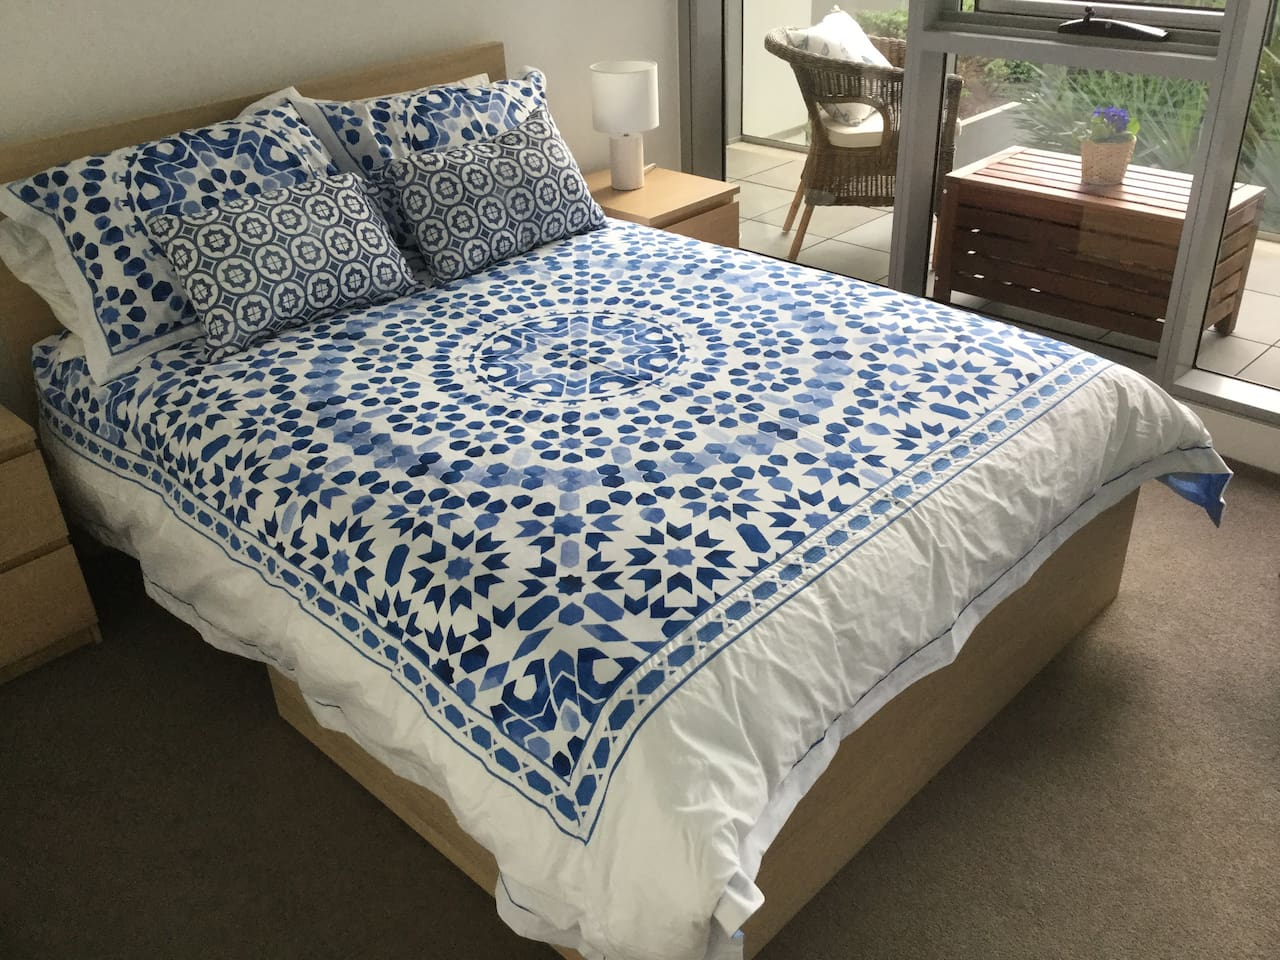 Quality Alex Perry bed linen